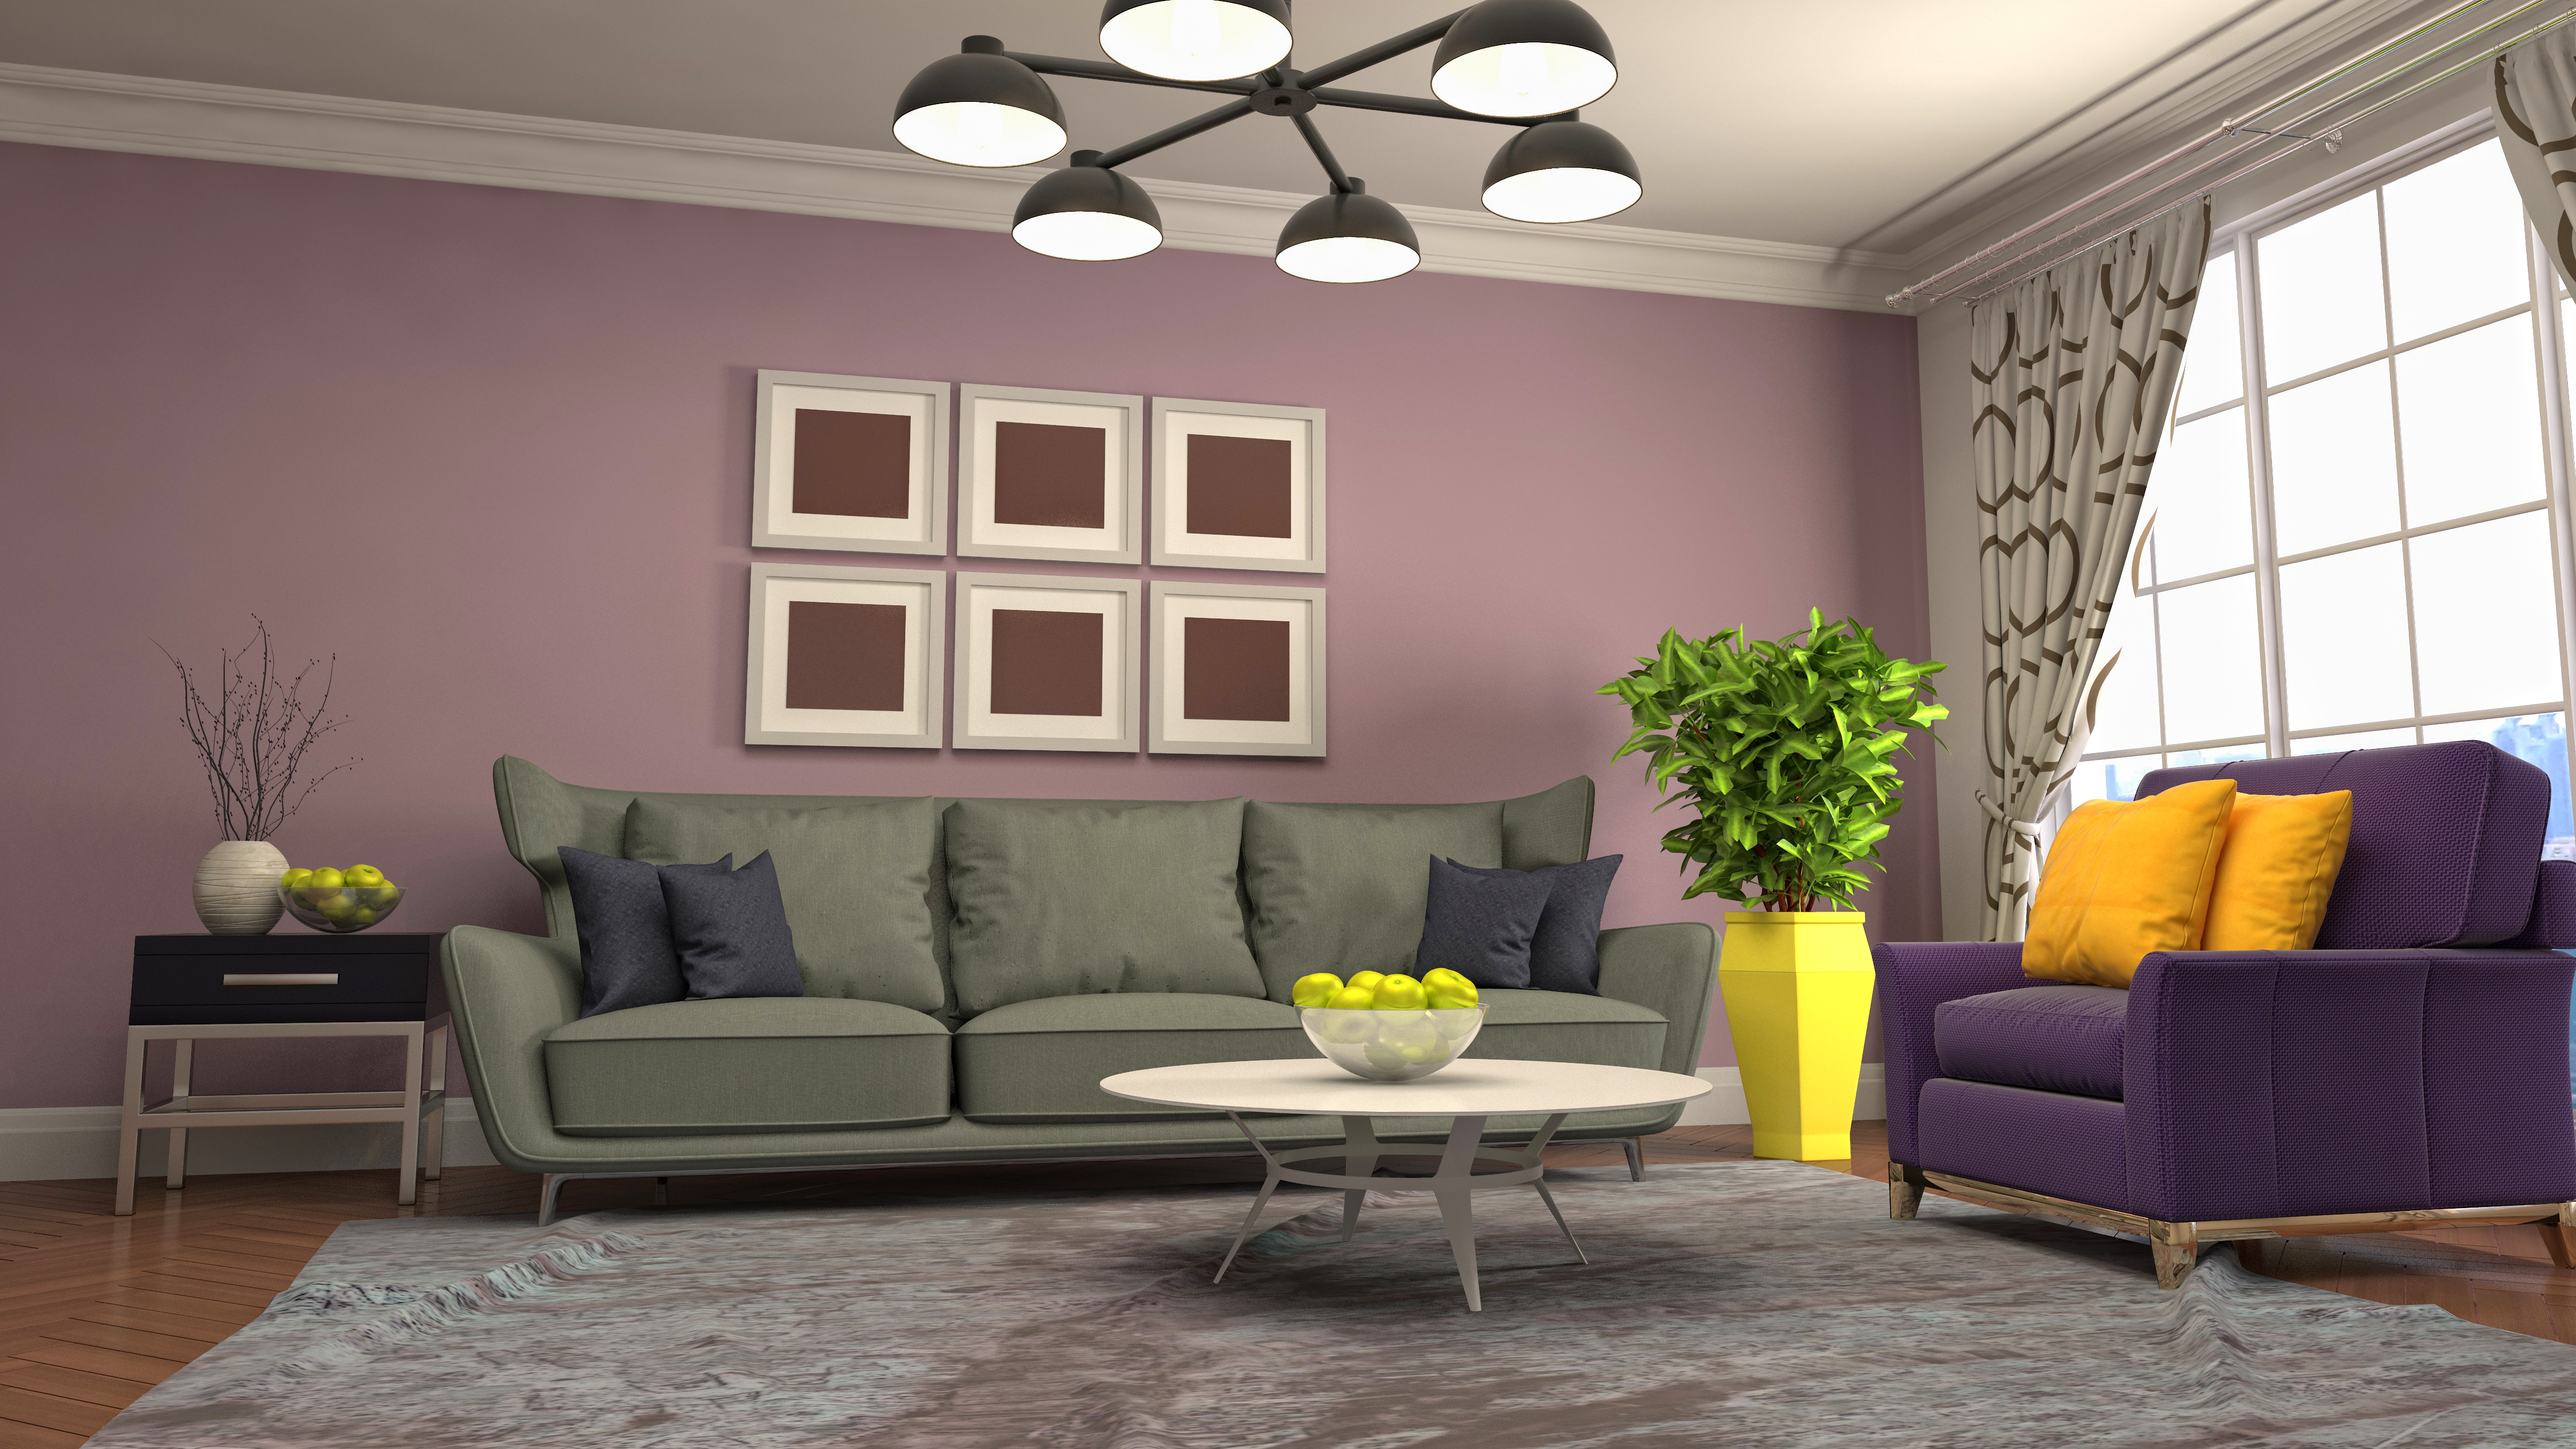 The Best Company to Walk-in to Make Your Home Beautiful